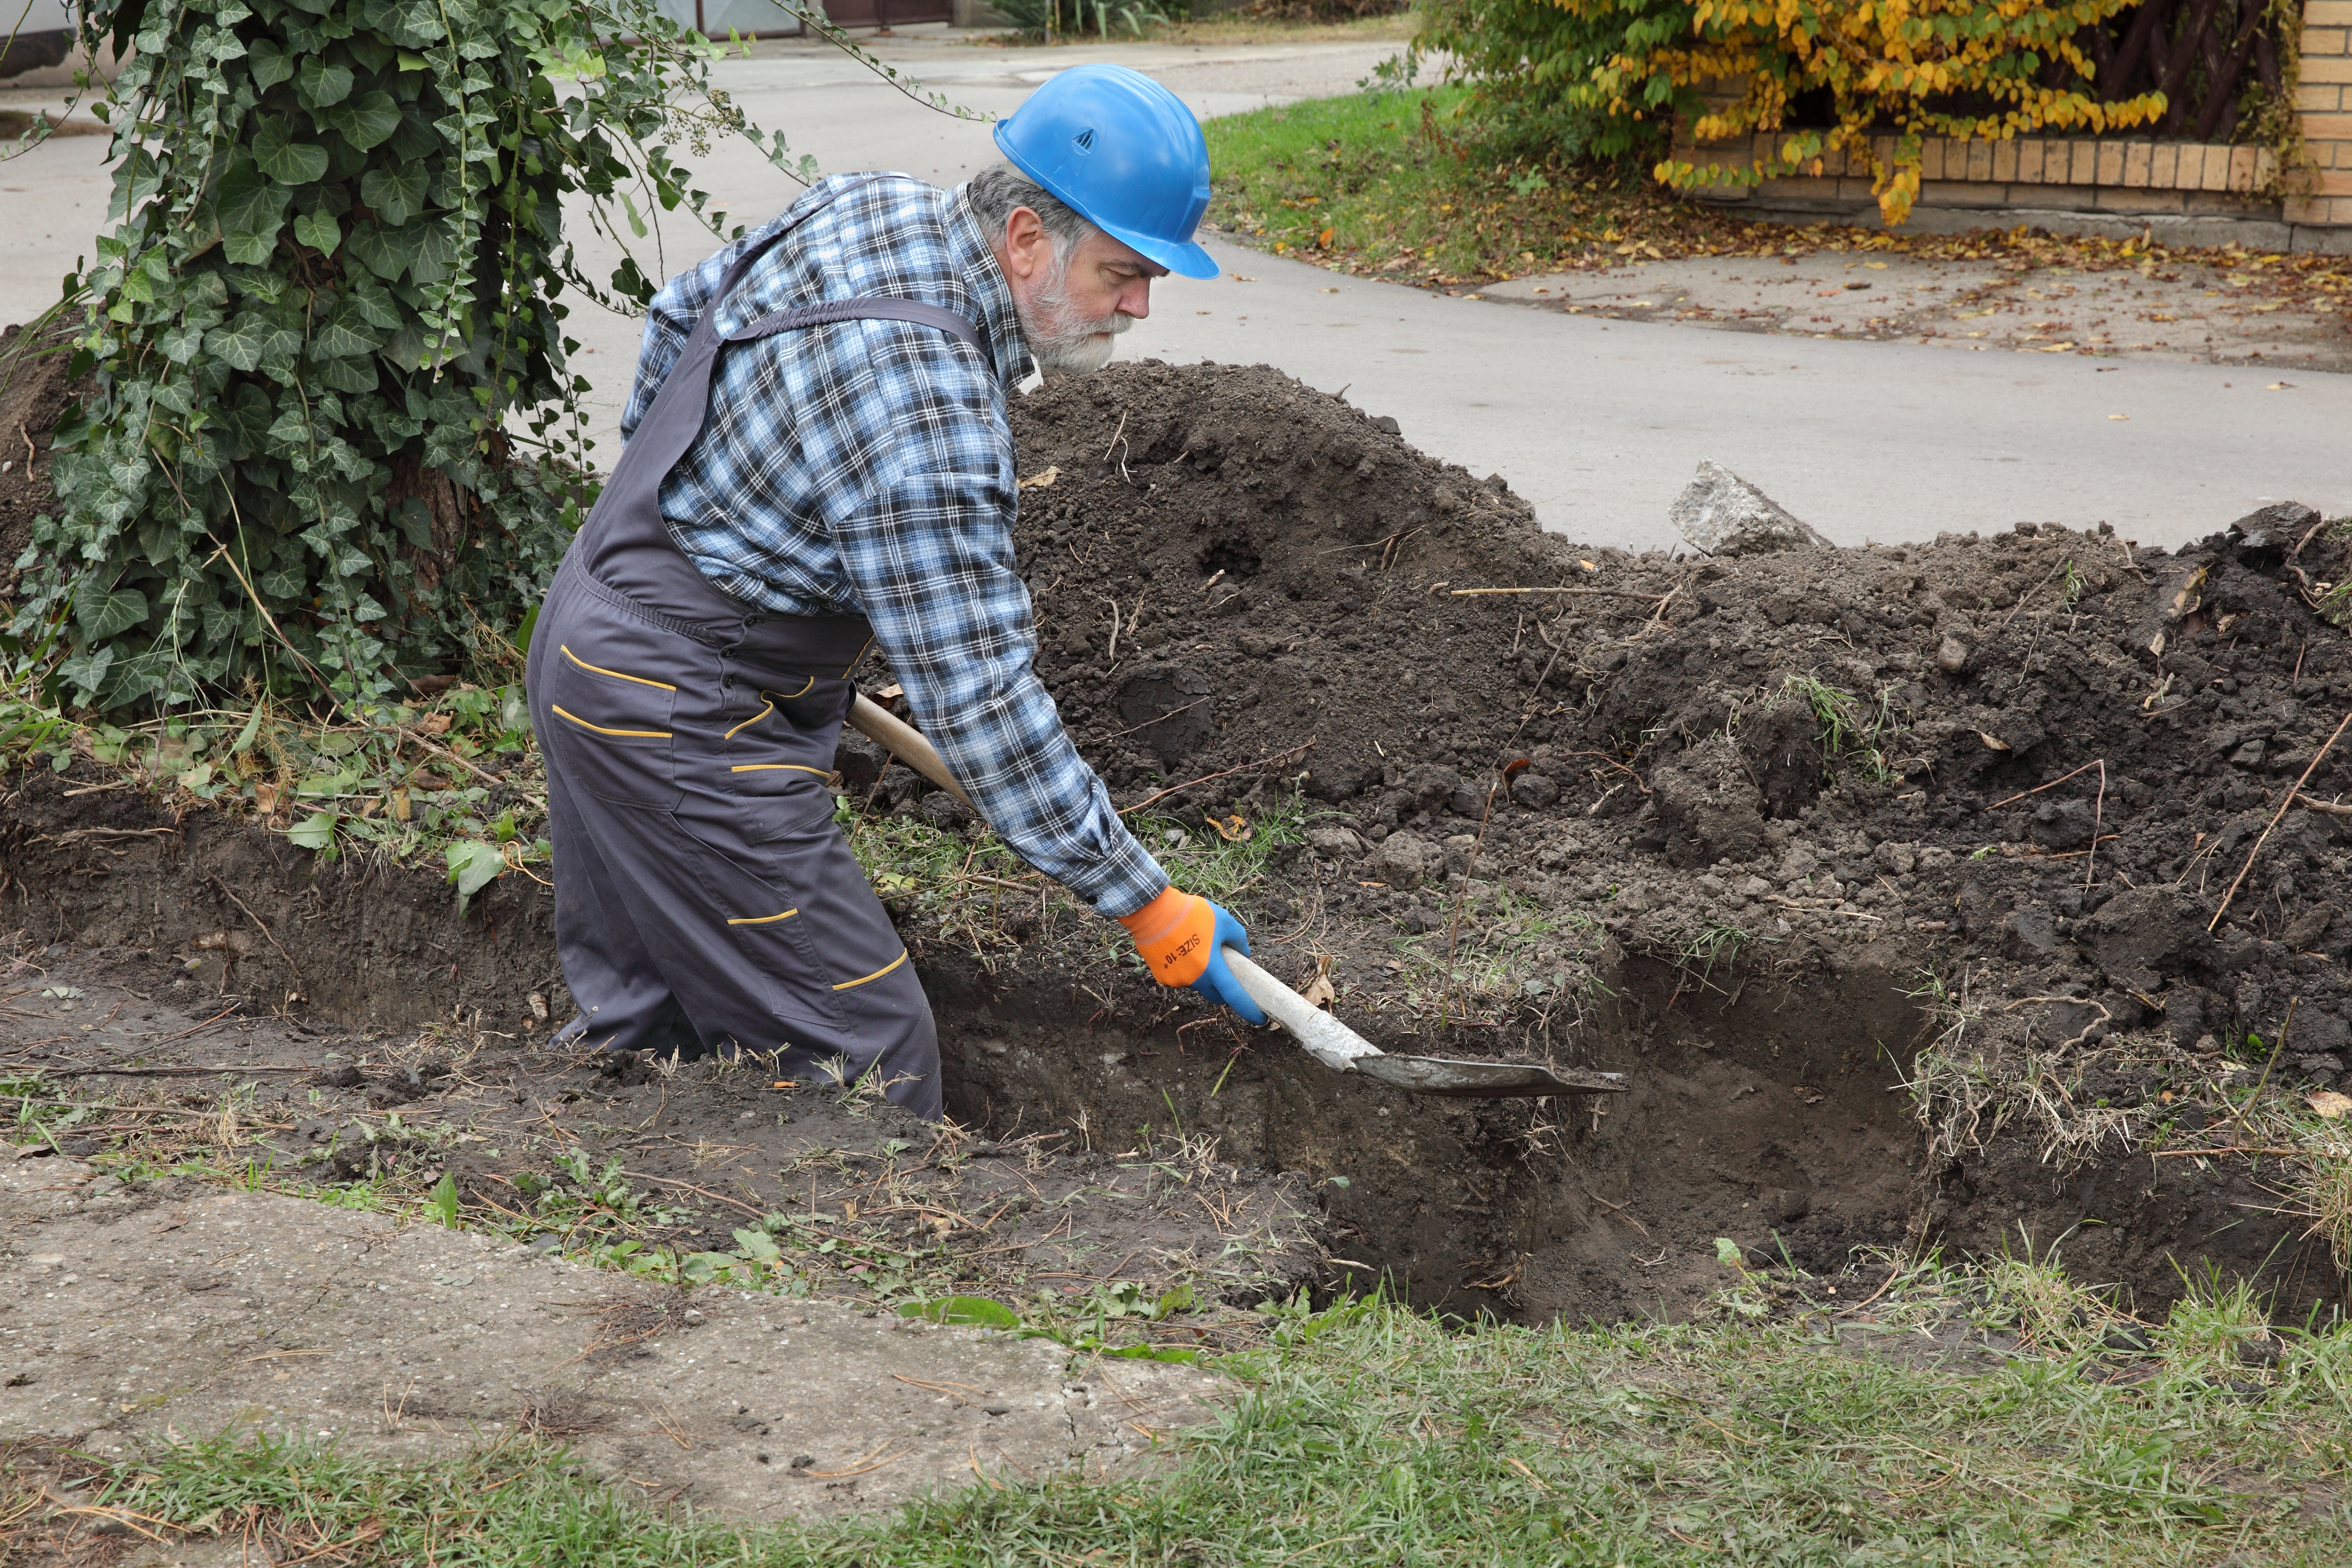 Trenching is now obsolete and unnecessary